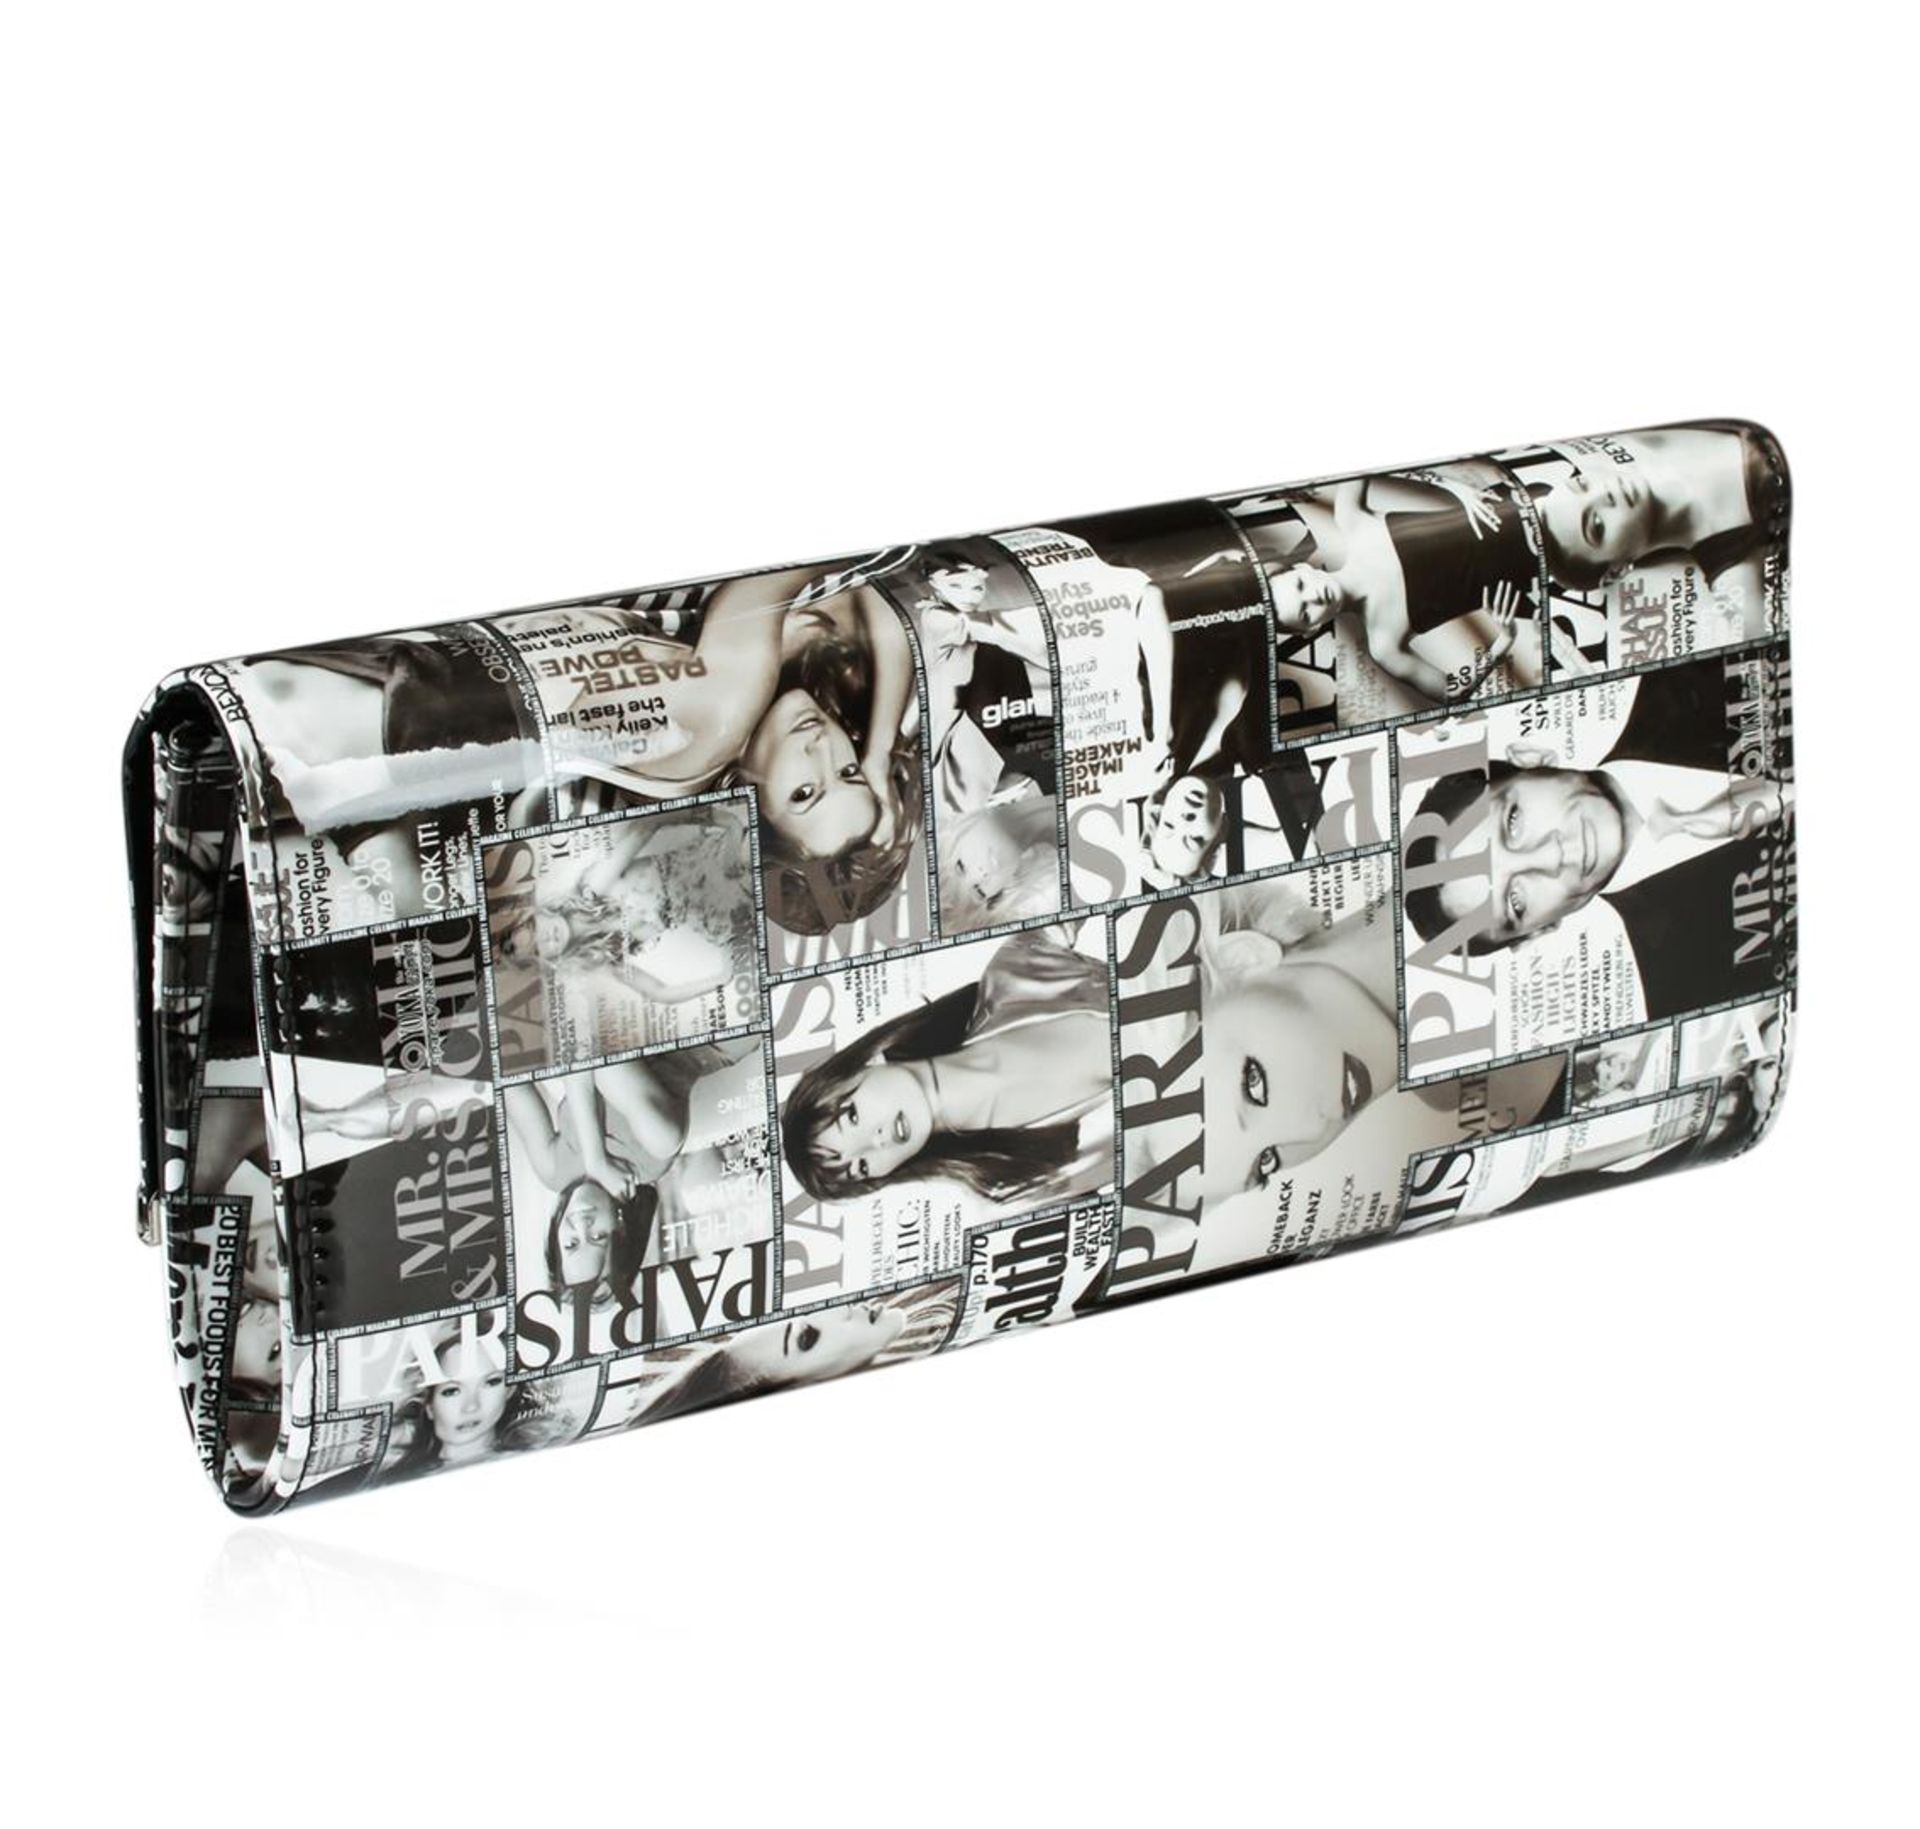 Black and White Fashionista Patent Oversized Clutch - Image 2 of 3